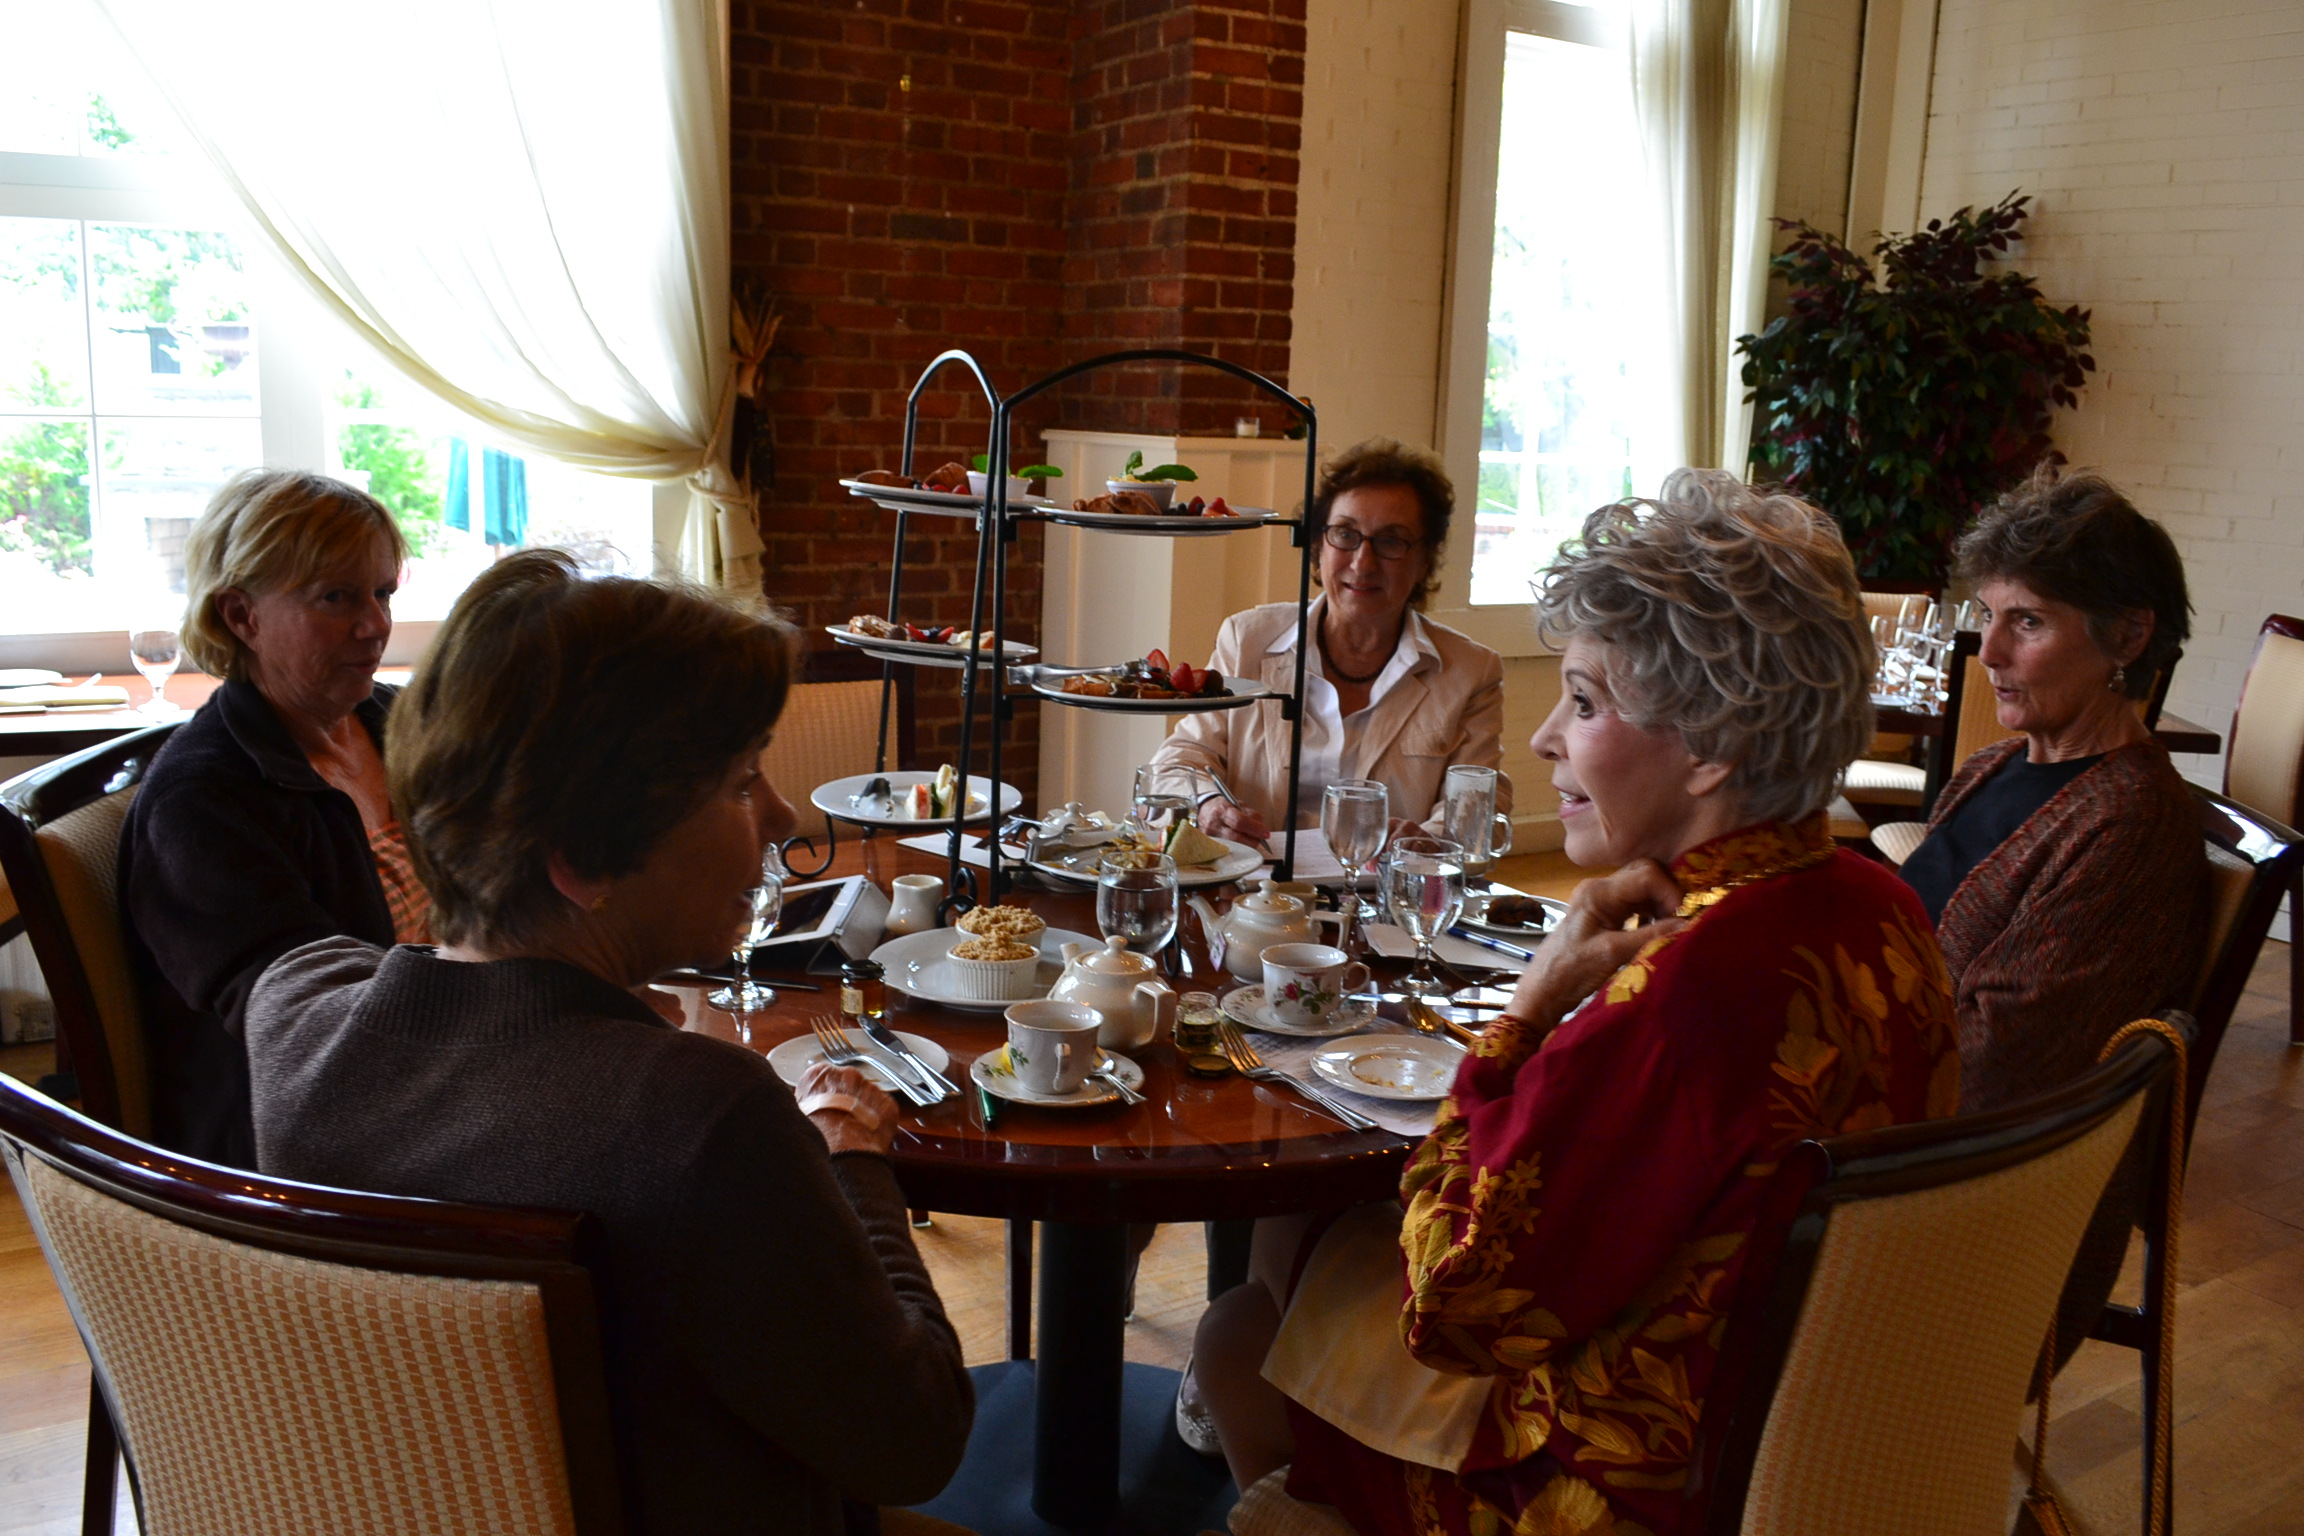 Downton Abbey Inspired Tea Time At Hotel Viking In Newport